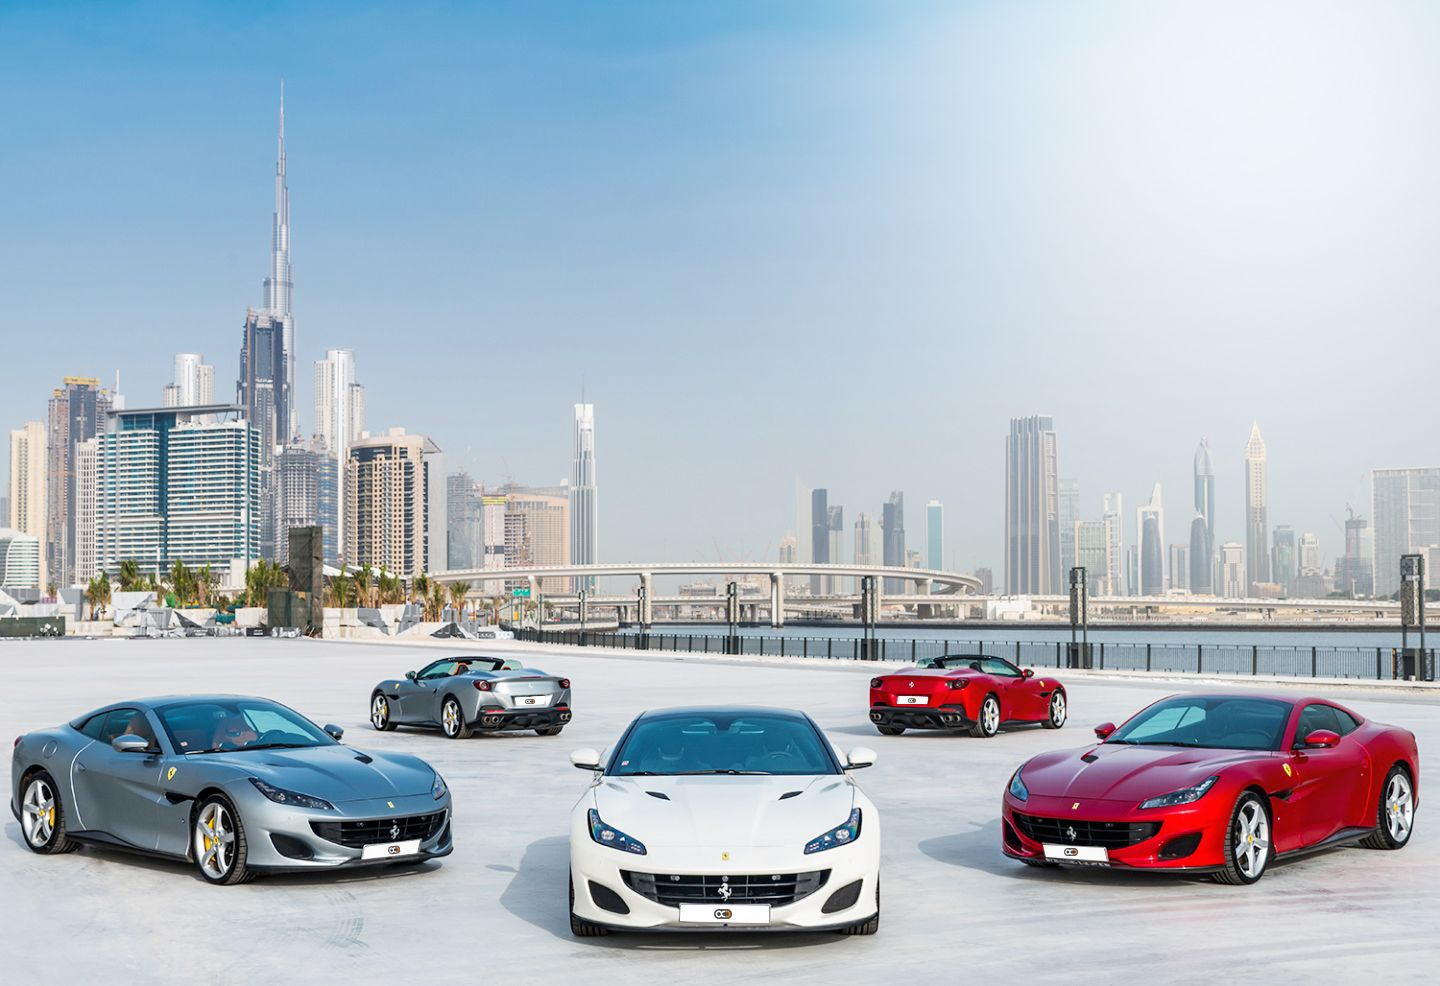 Looking For A Comfortable Car We Ve Got Options For You Call Oneclickdrive Car Rentals 971 56 769 1449 To Inquire Now Dubai Rent Ferrari Dubai